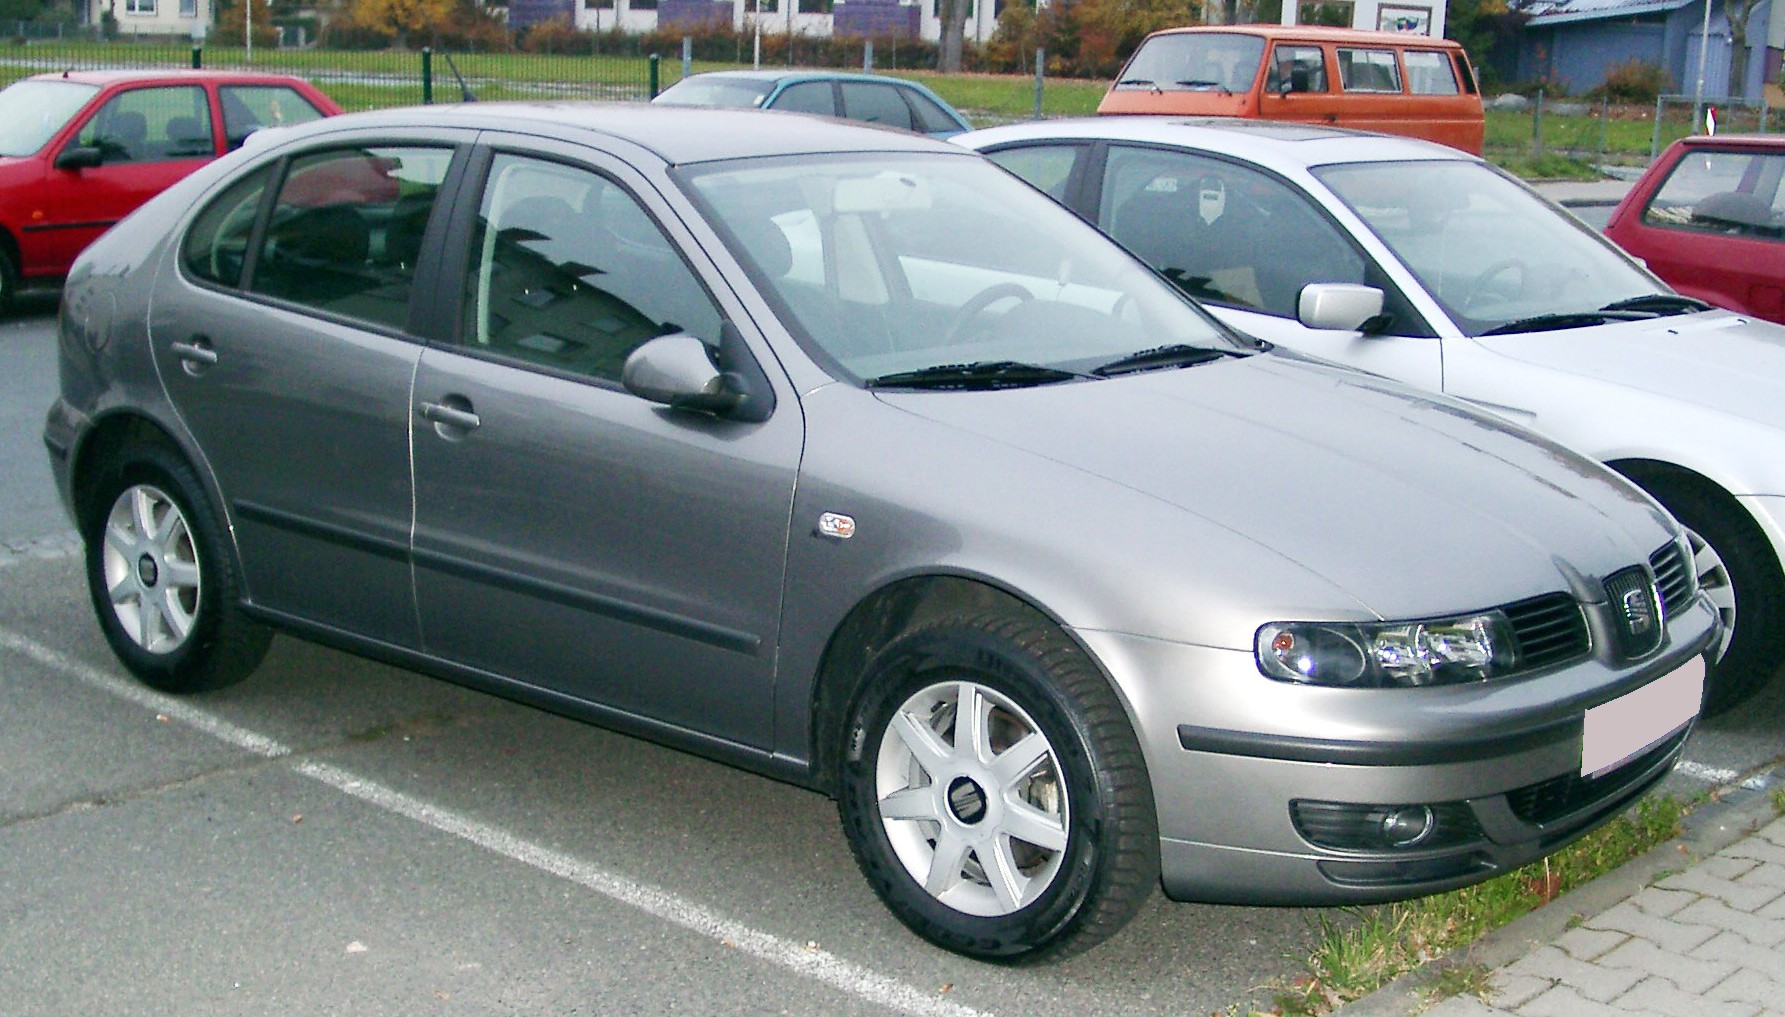 T477p15 Photos Vw Golf 2 as well Le Bon Coin Voiture D Occasion Var besides 2085467 in addition Vwvortex Couple Of Issues For Vw Tiguan Fuse Box Diagram besides Cooper. on 83 vw cabriolet